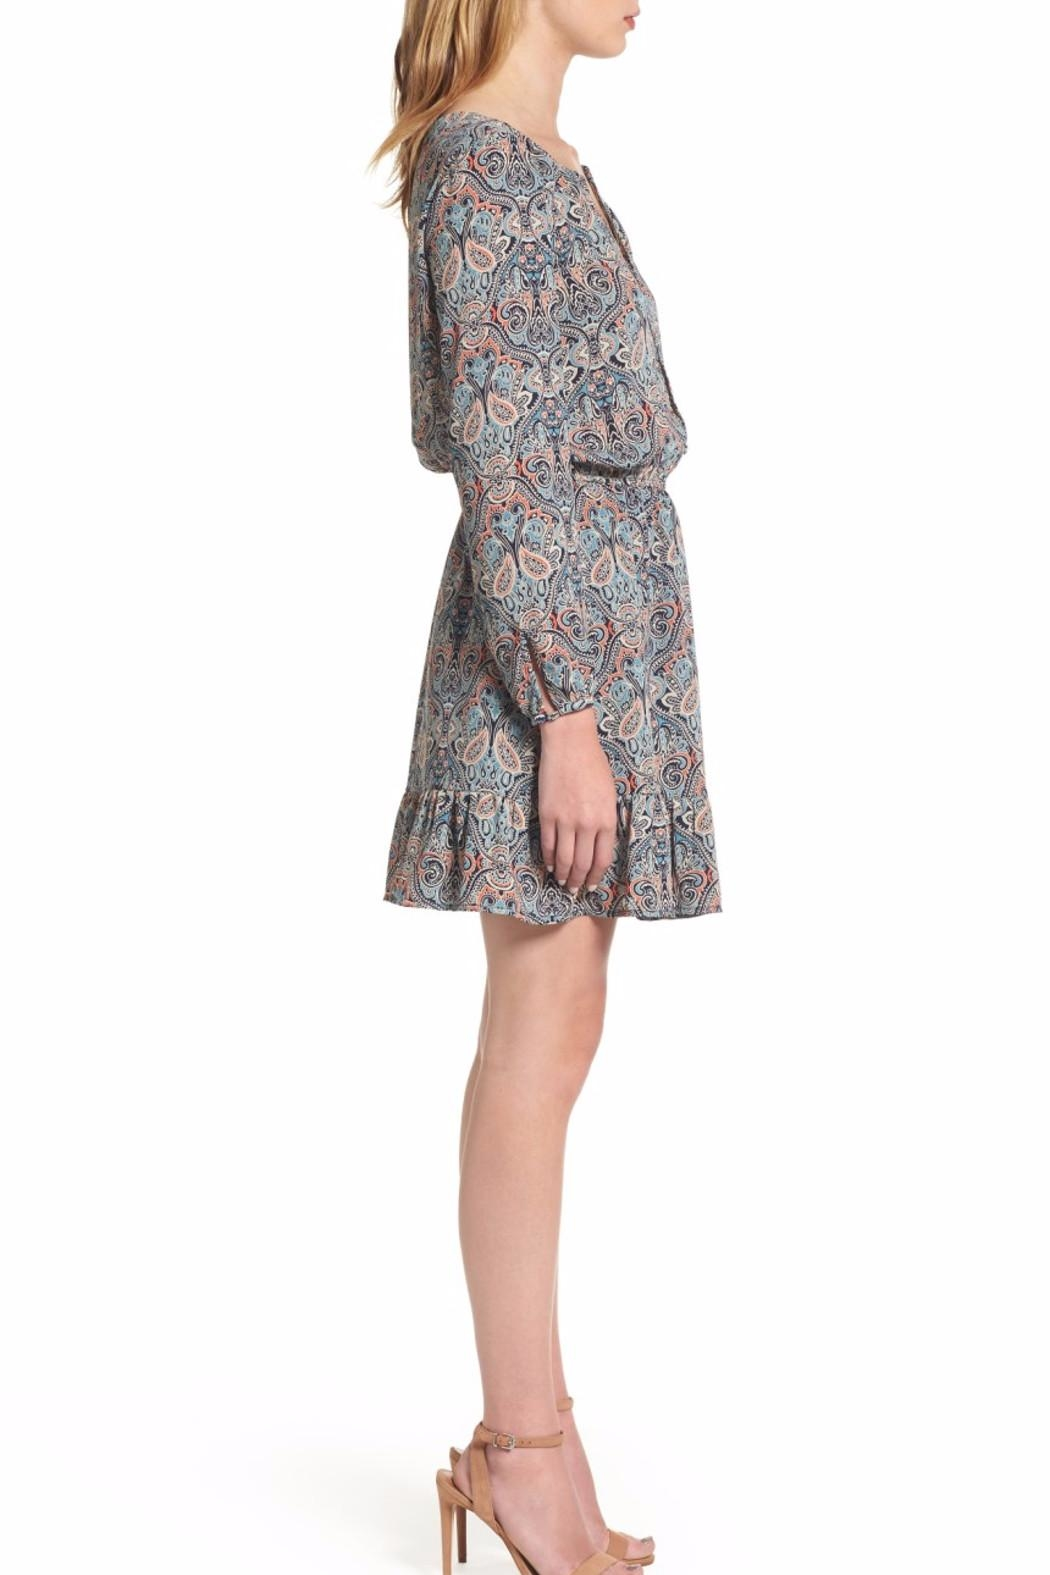 Cupcakes & Cashmere Selma Paisley Dress - Side Cropped Image